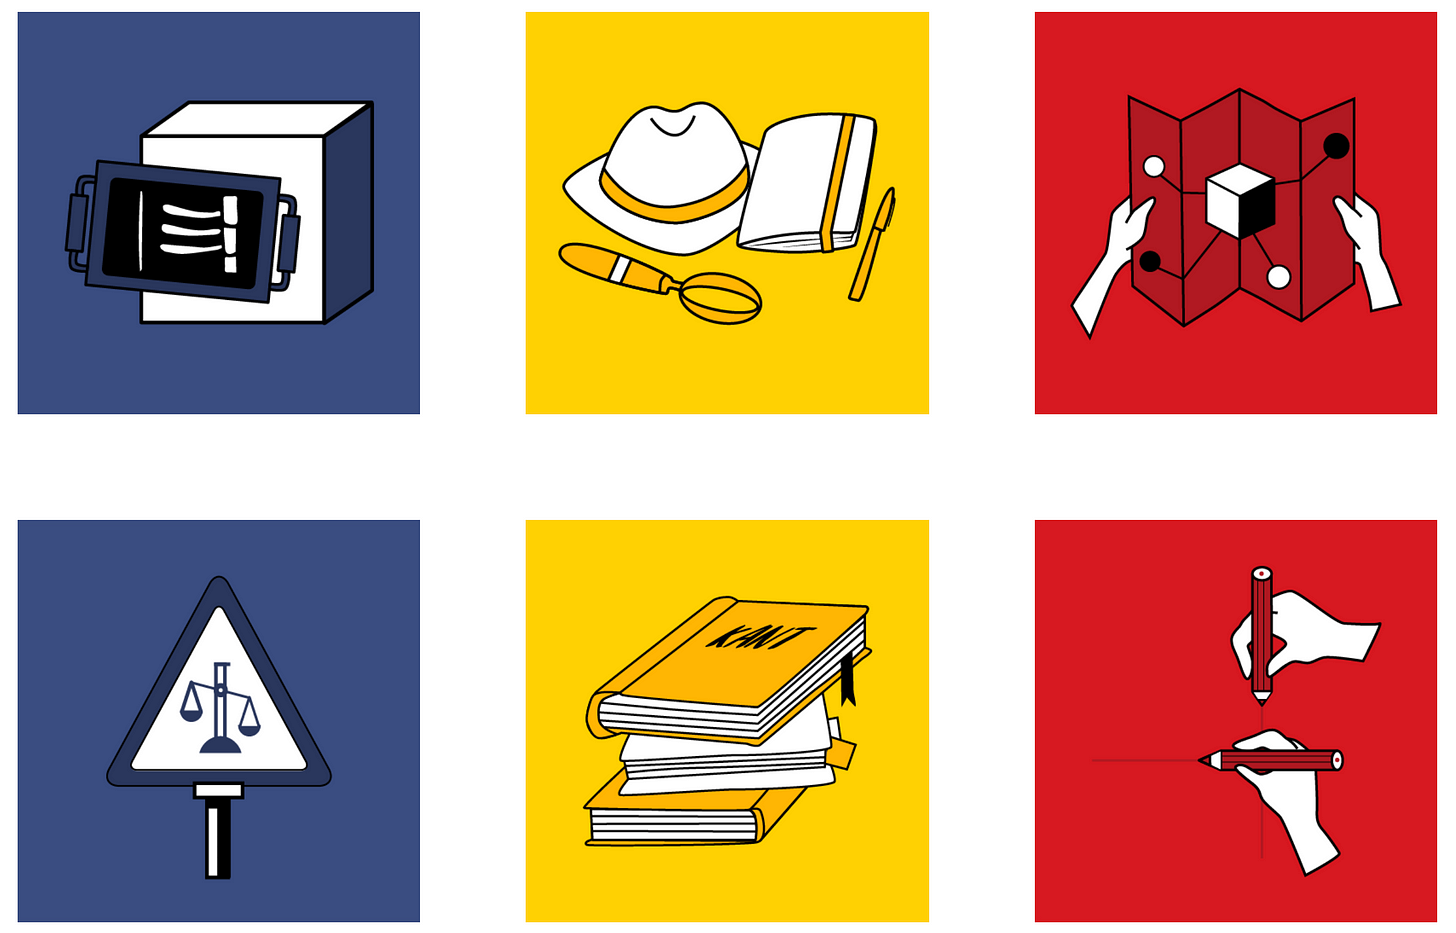 image of Ethical tools for designers